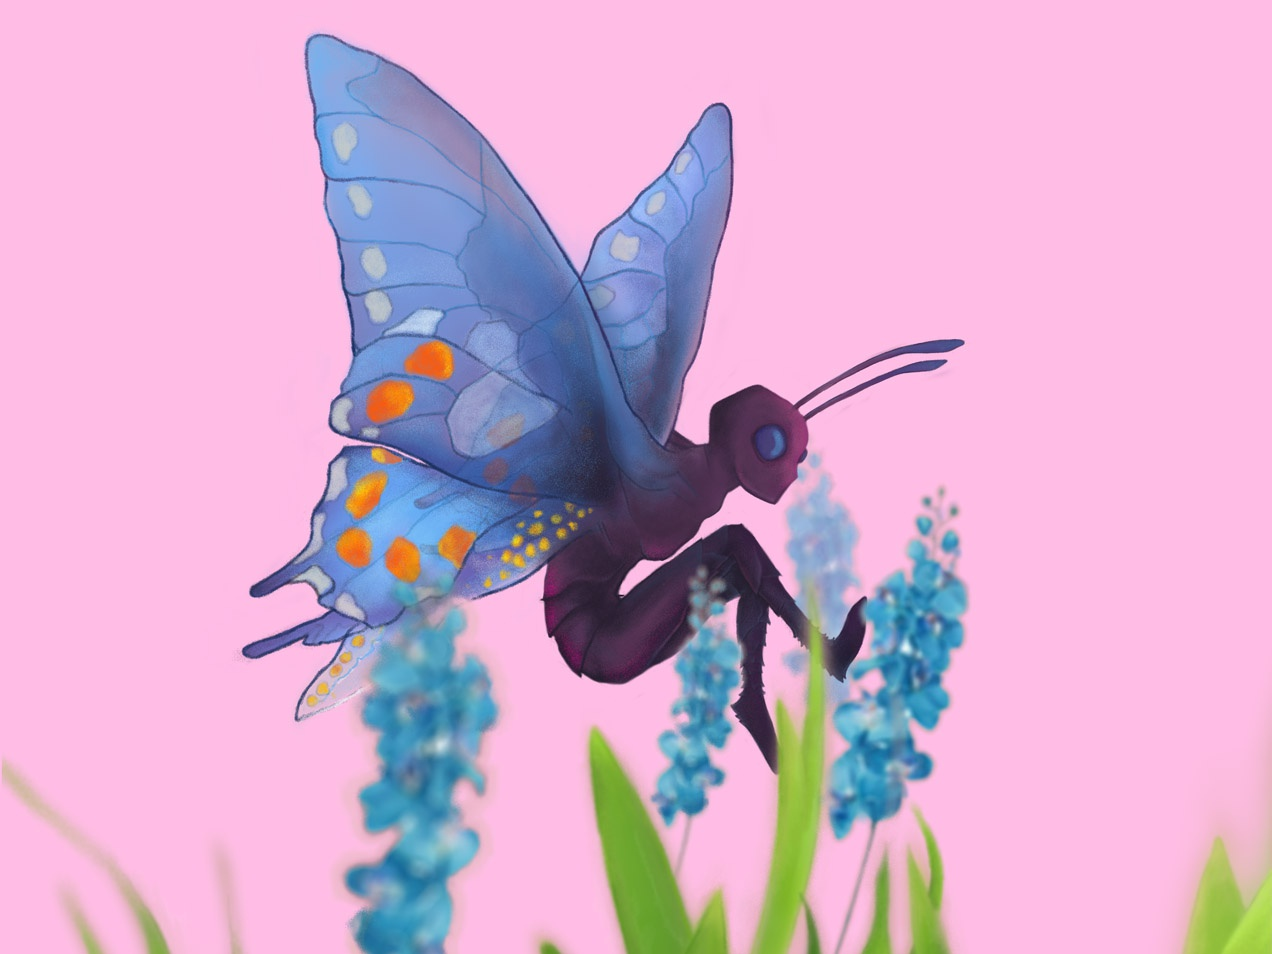 Butterfly butterfly concept art character design artwork digital 2d illustration